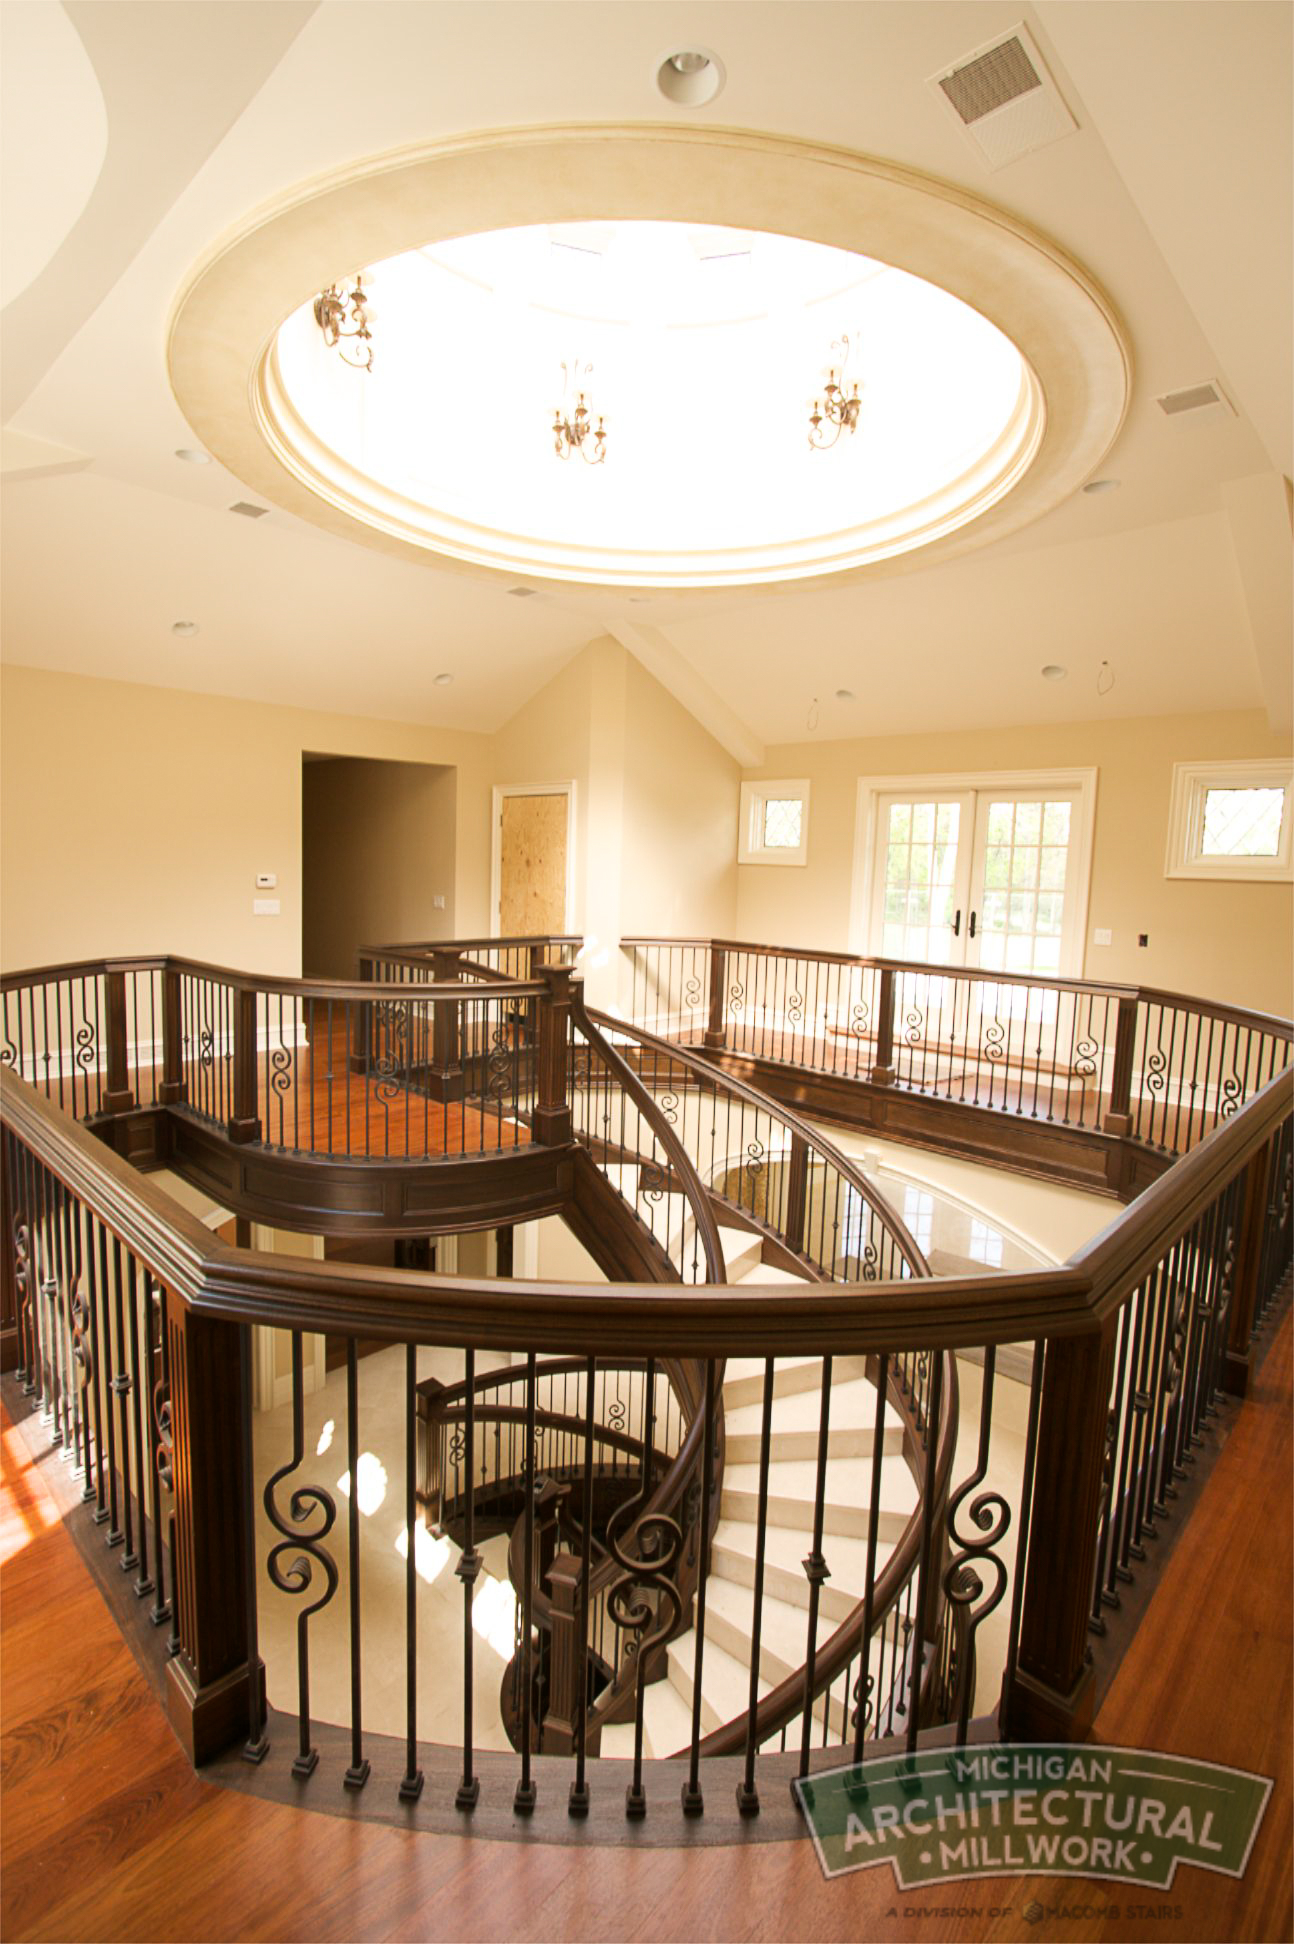 Michigan Architectural Millwork- Moulding and Millwork Photo-93.jpg